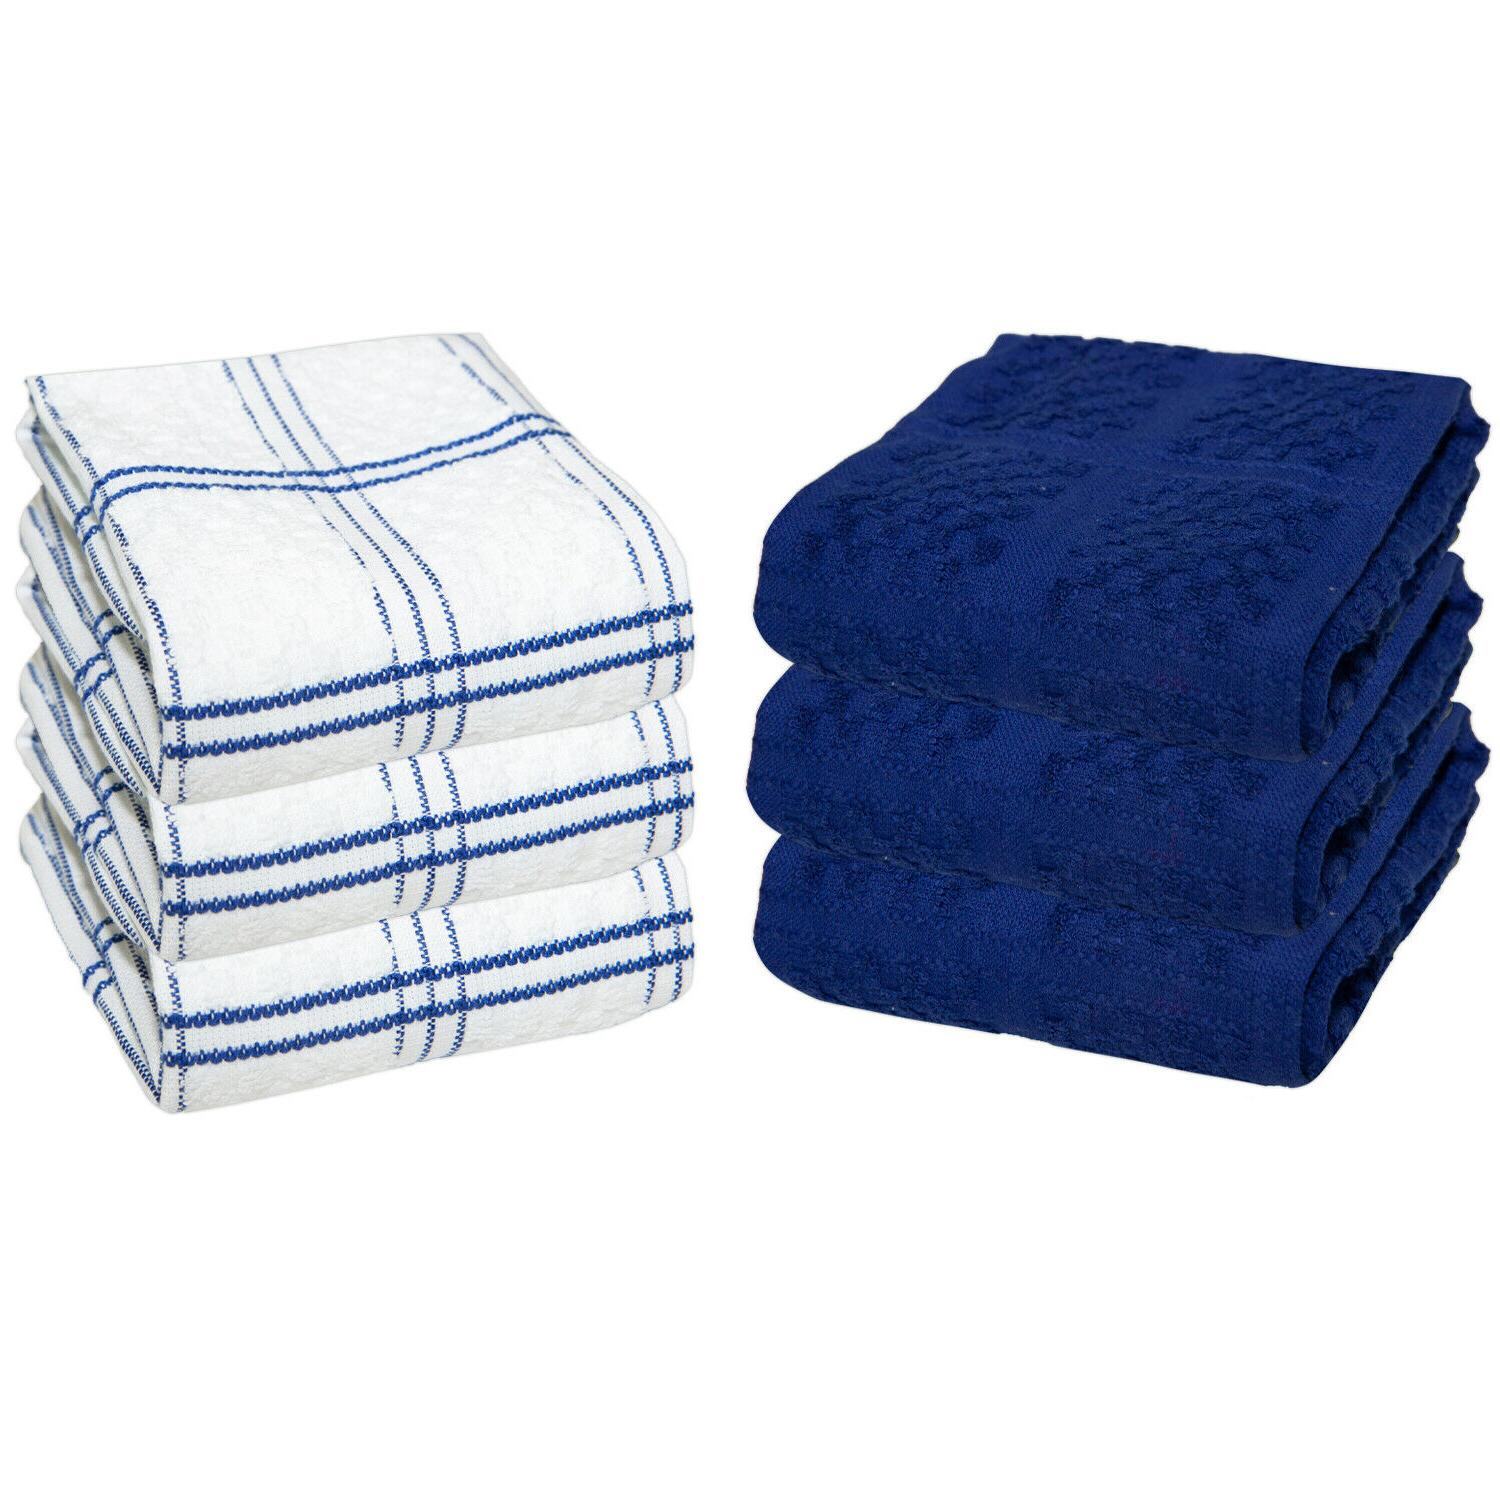 6 pack of kitchen tea towels striped